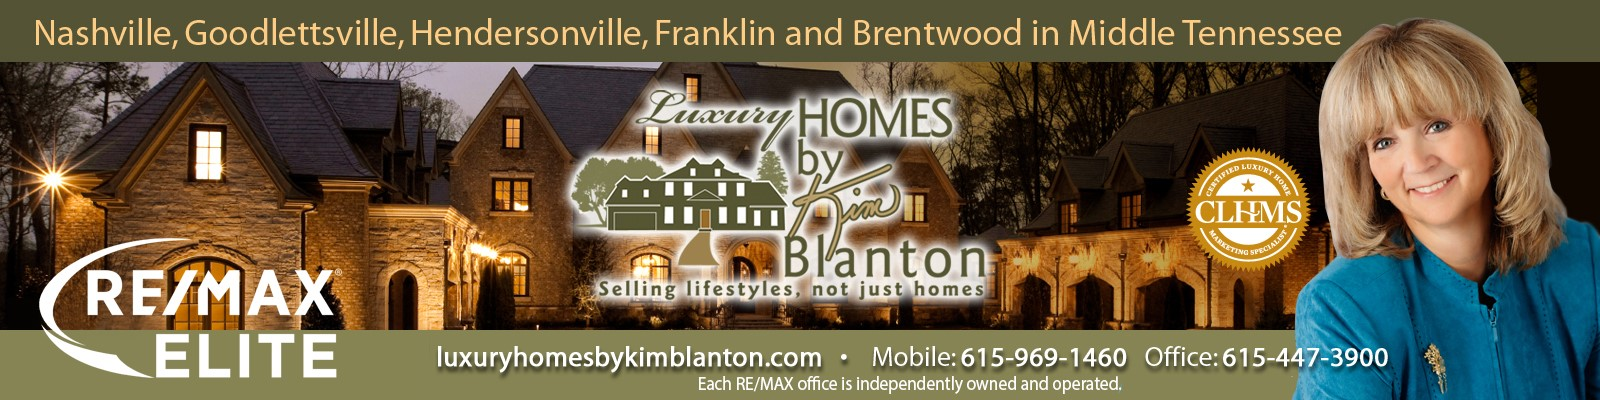 Brentwood TN Luxury Homes for Sale Luxury Homes by Kim Blanton